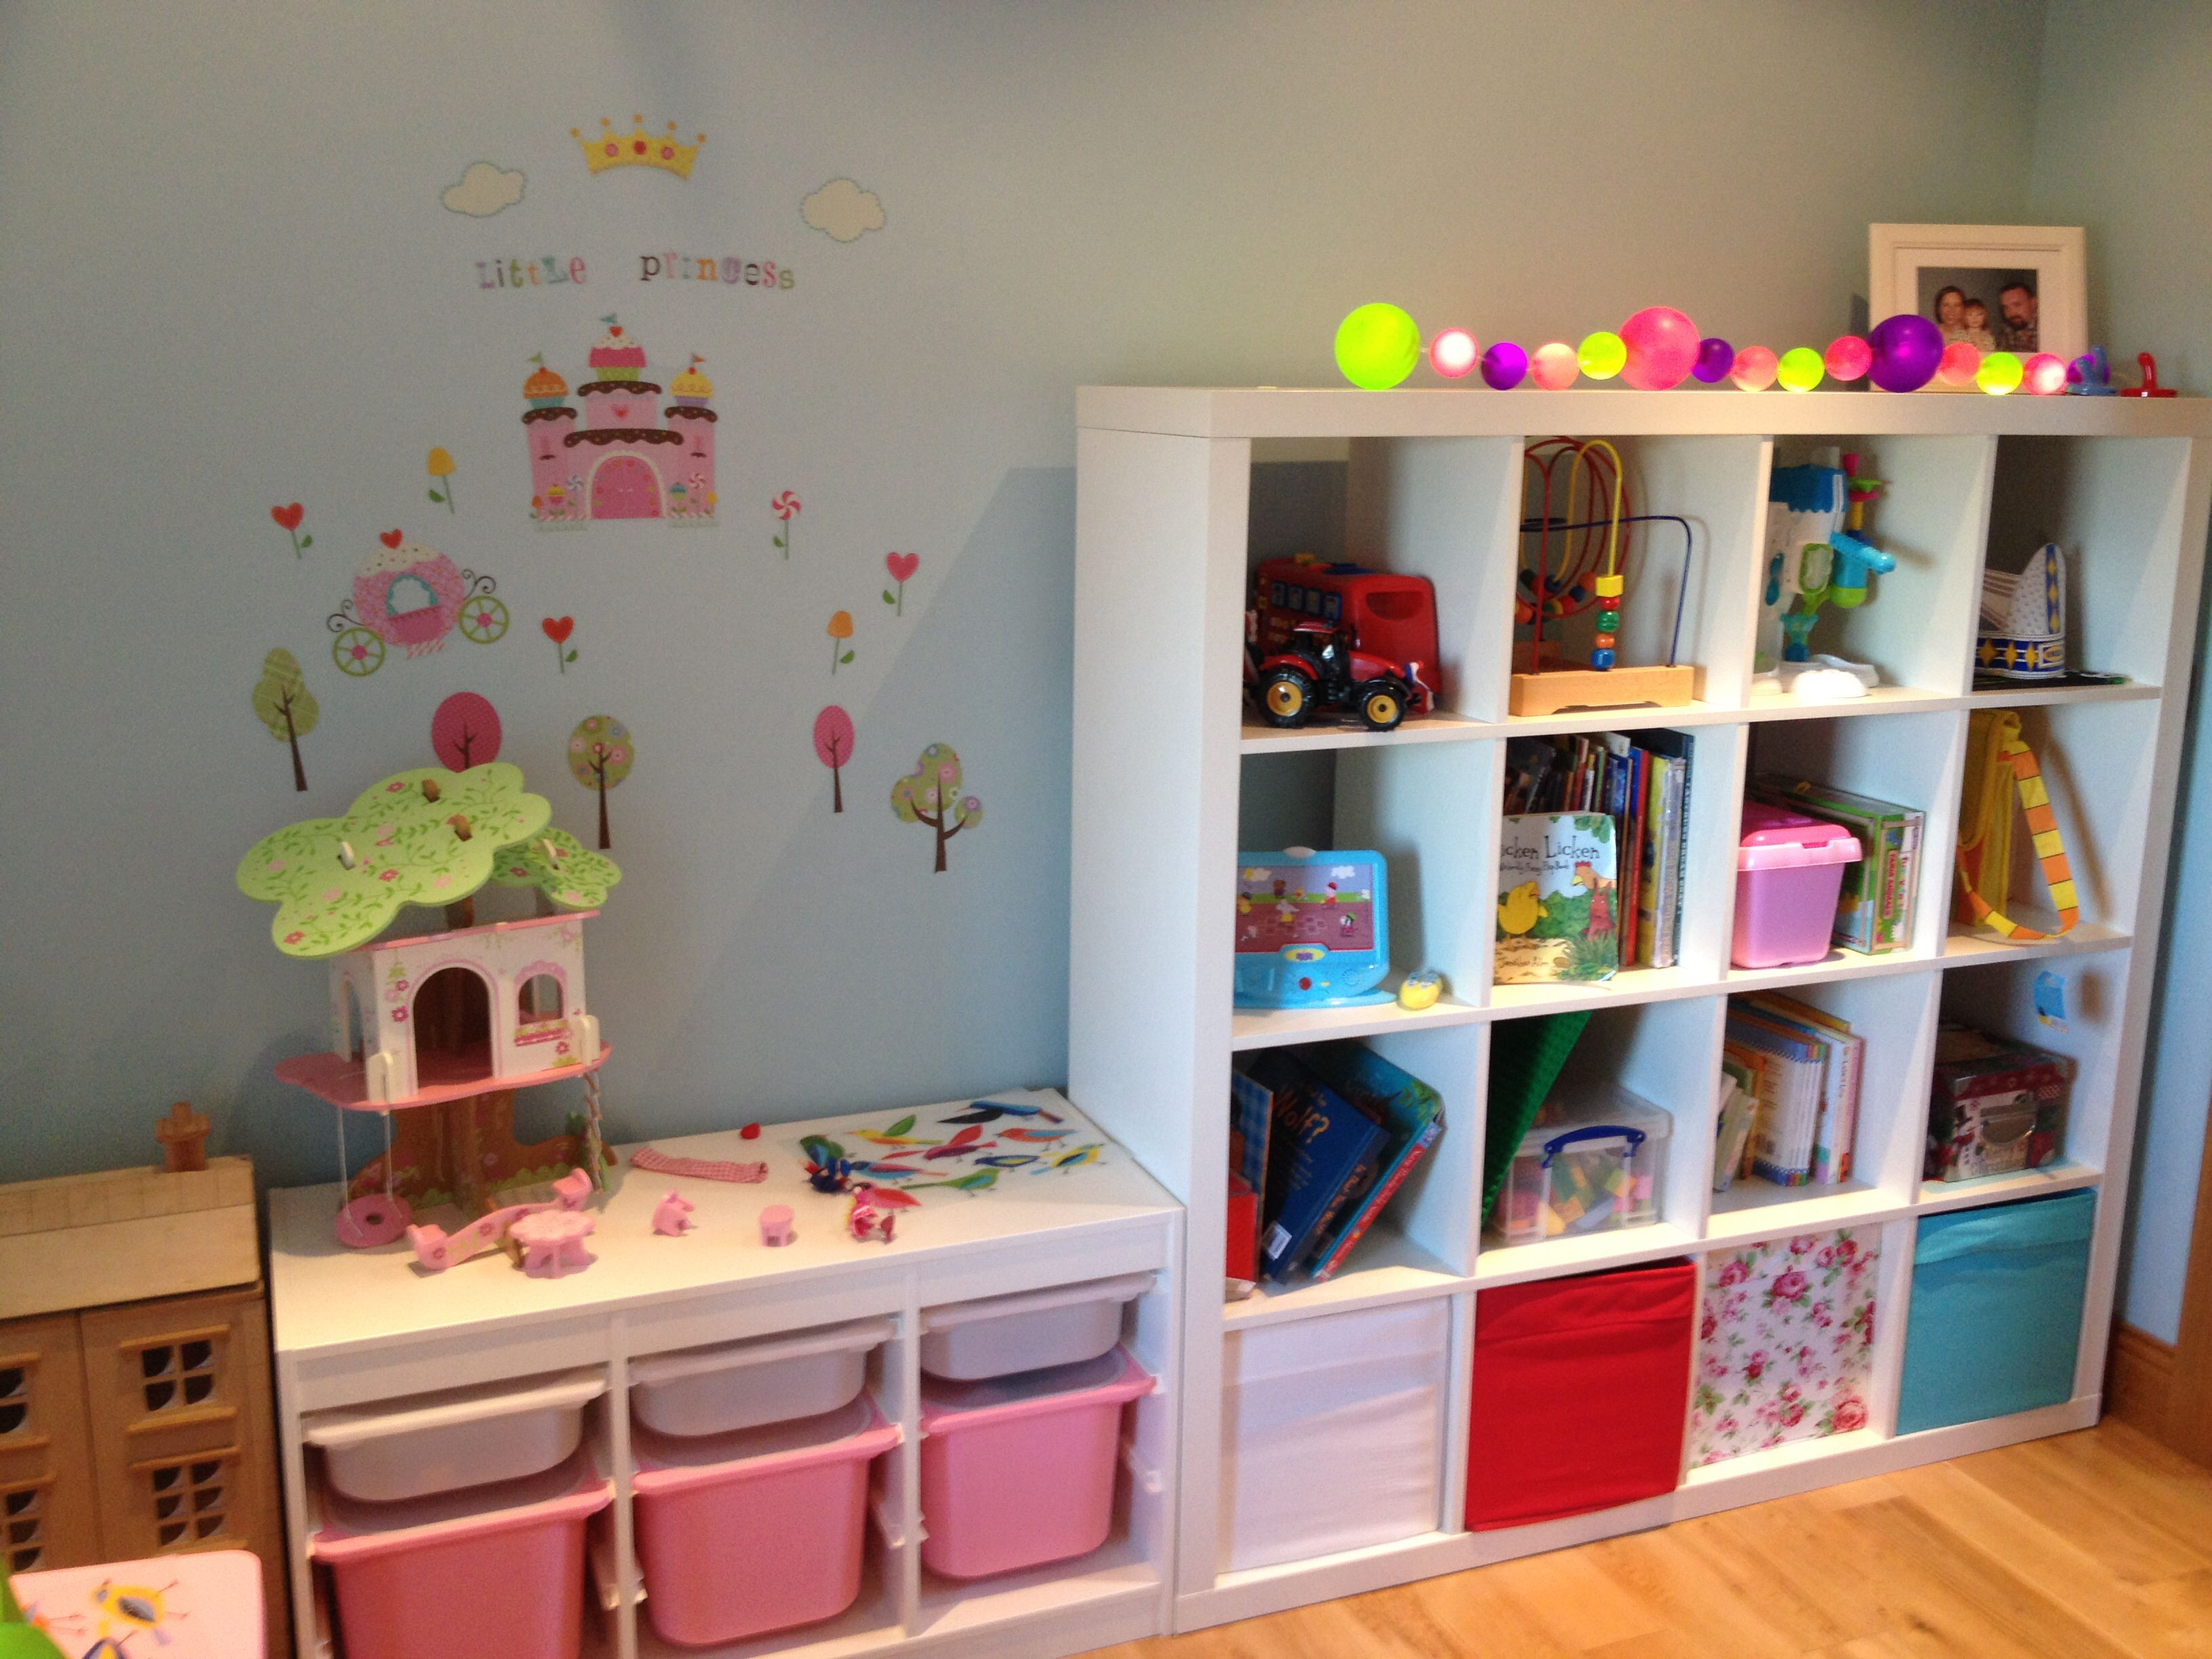 Playroom Furniture From Ikea Toy Room Furniture Ikea Kids Playroom Ikea Playroom